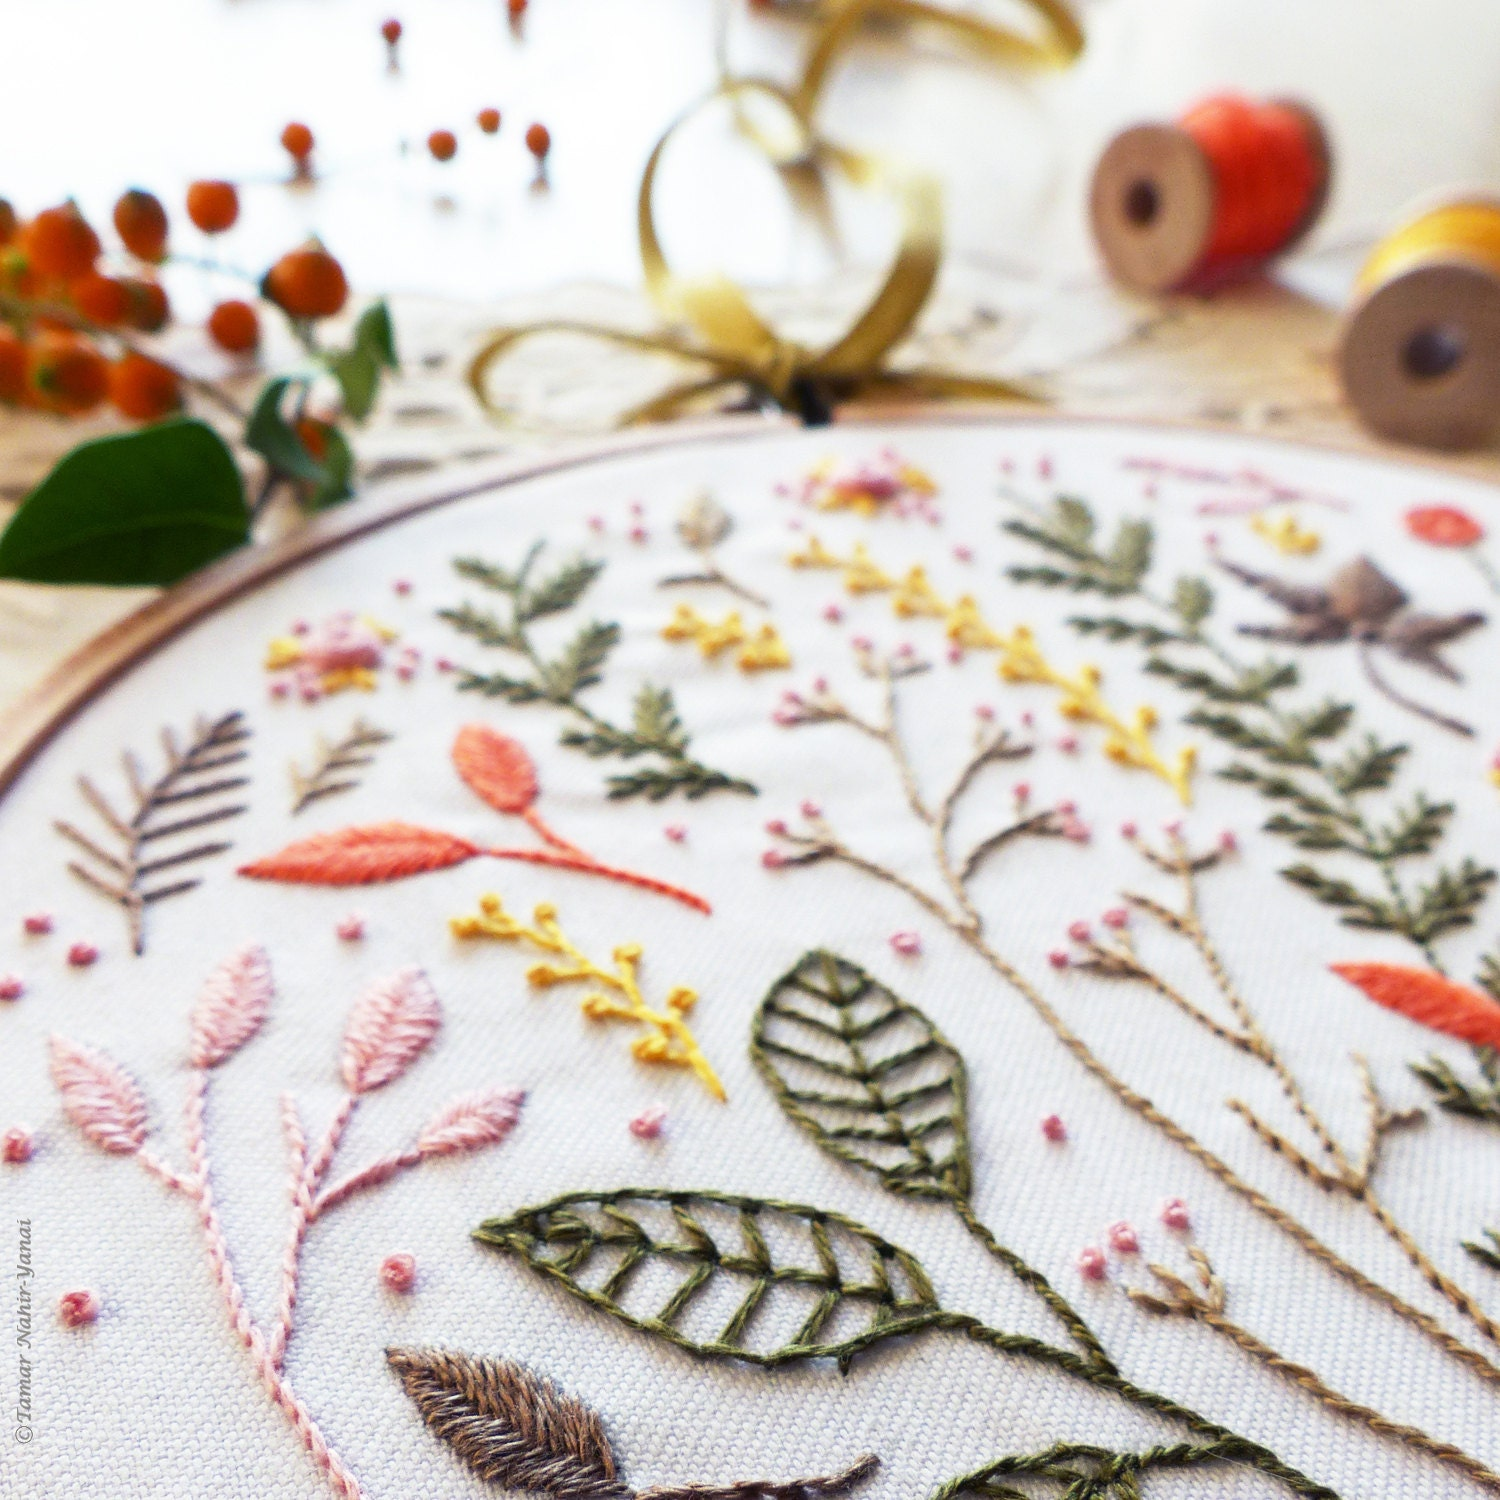 Modern hand embroidery kit autumn leaves